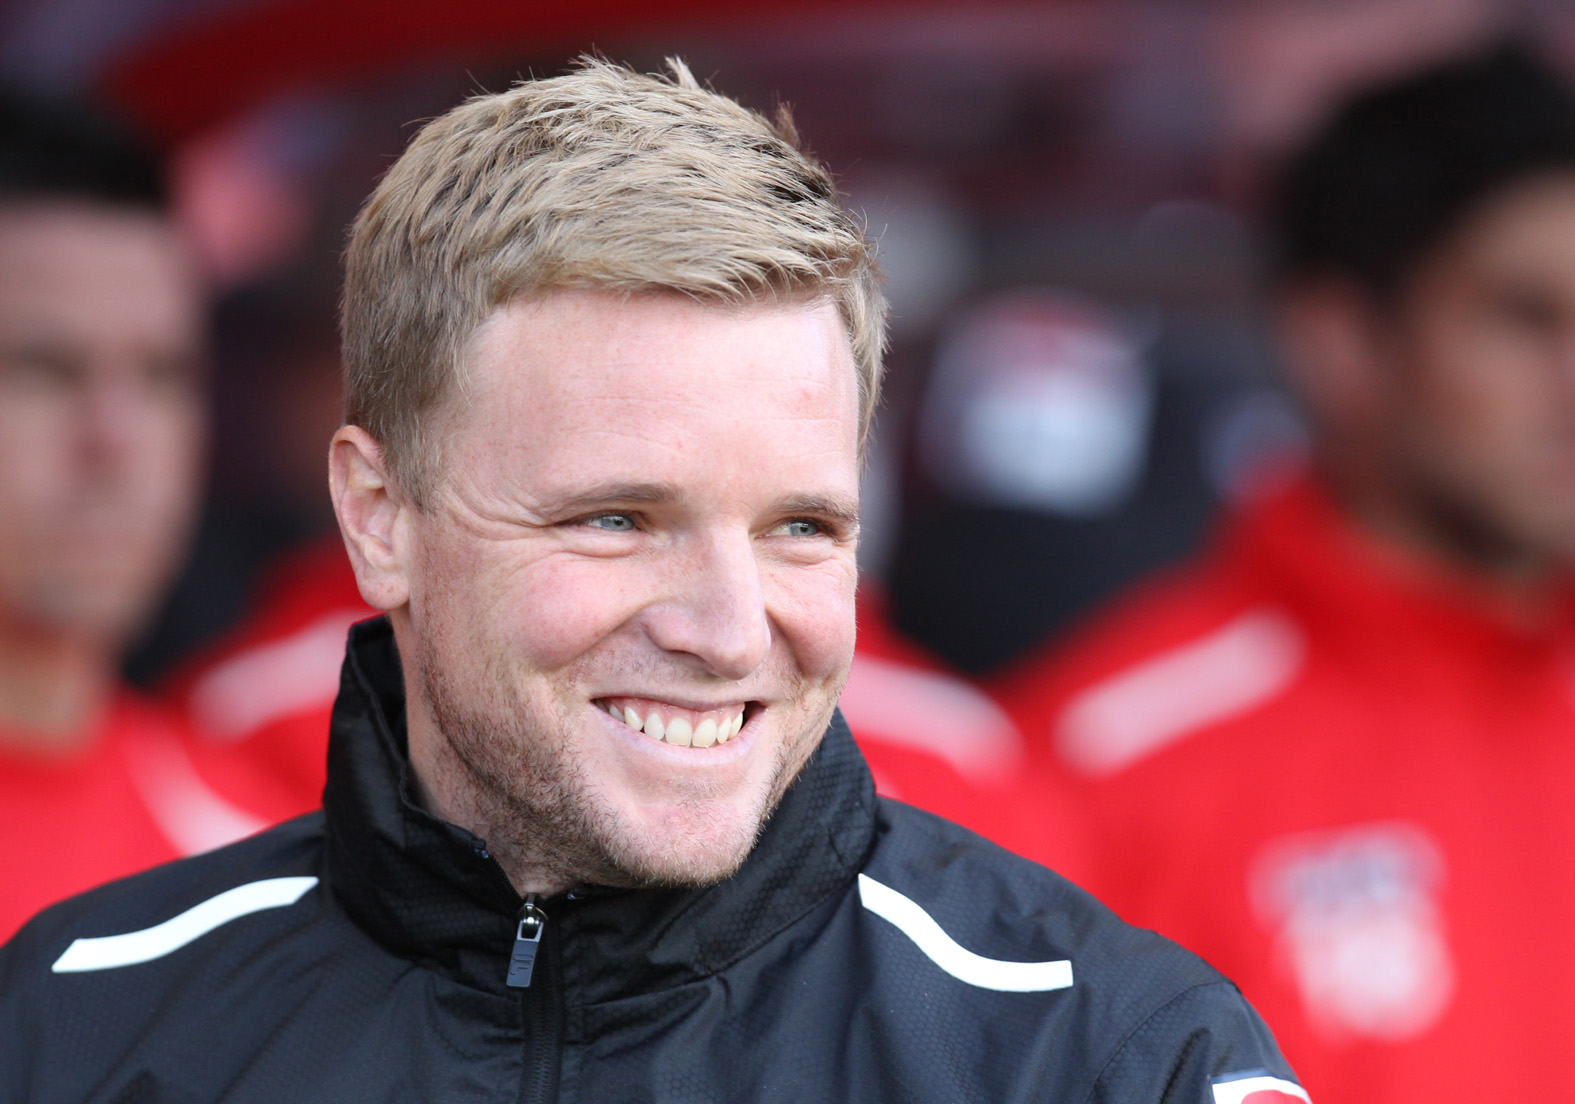 HAPPY: AFC Bournemouth boss Eddie Howe